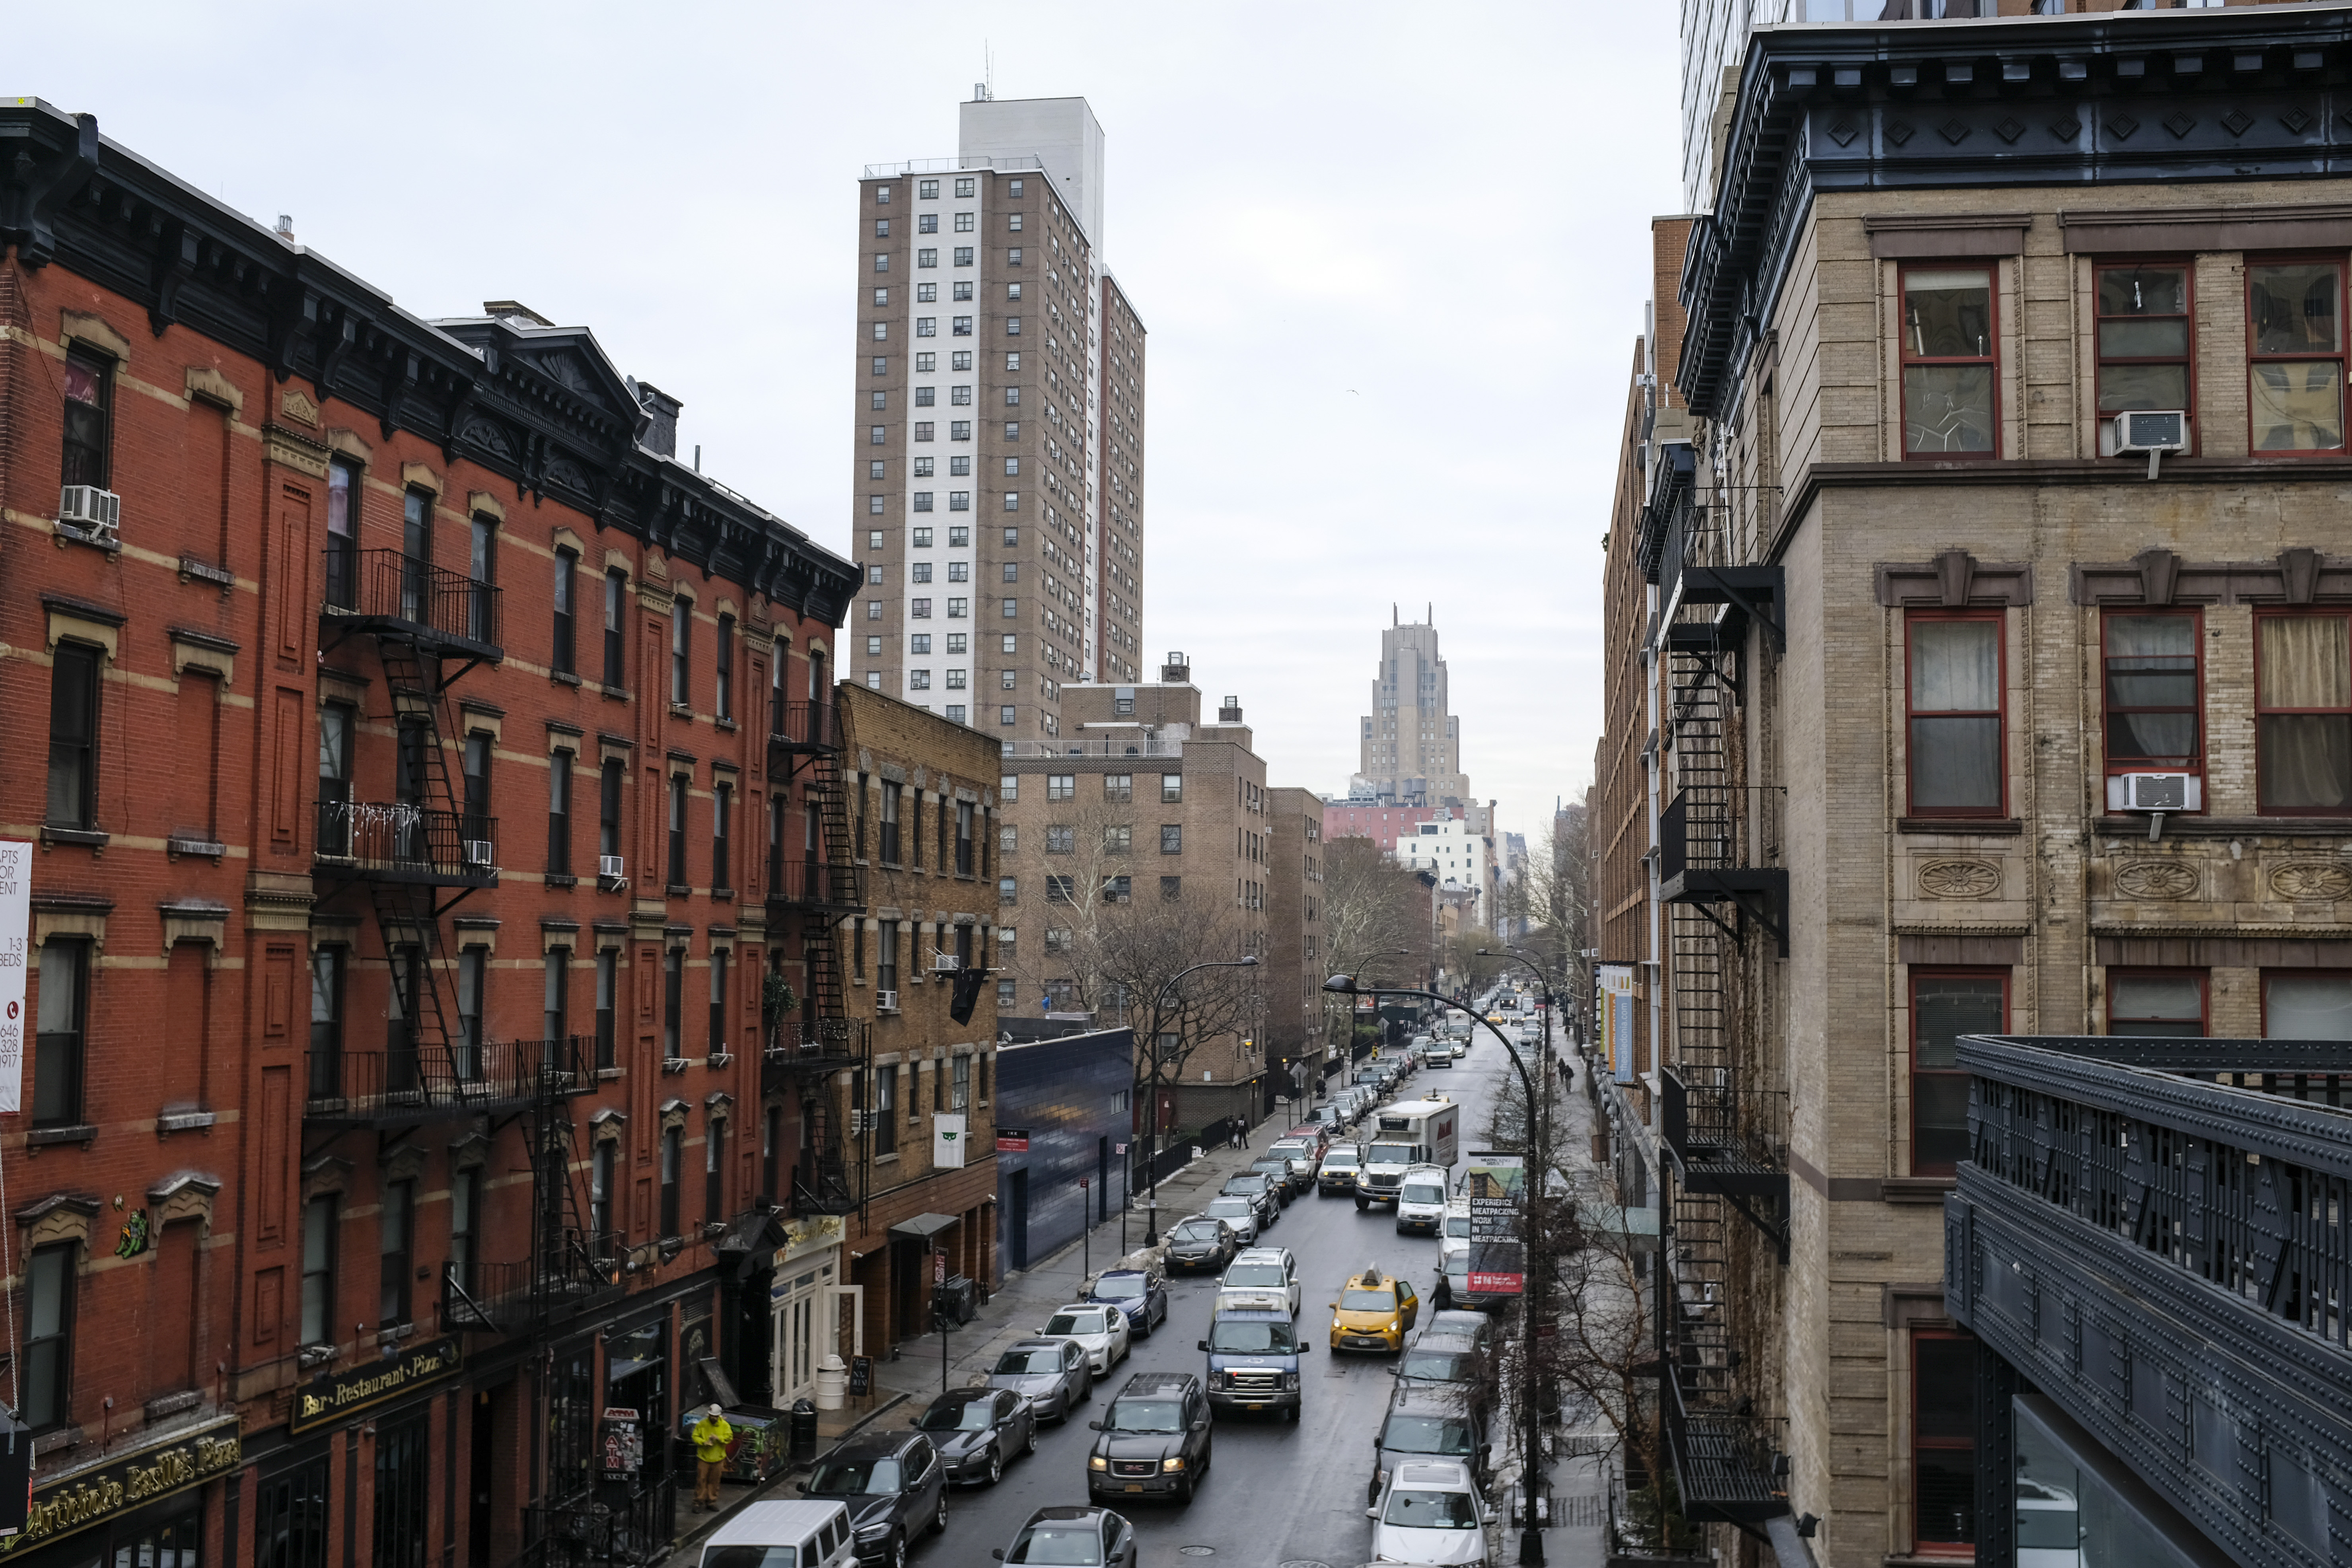 A view of apartments in the Chelsea neighborhood in Manhattan, January 11, 2018 in New York City. (Photo by Drew Angerer/Getty Images)